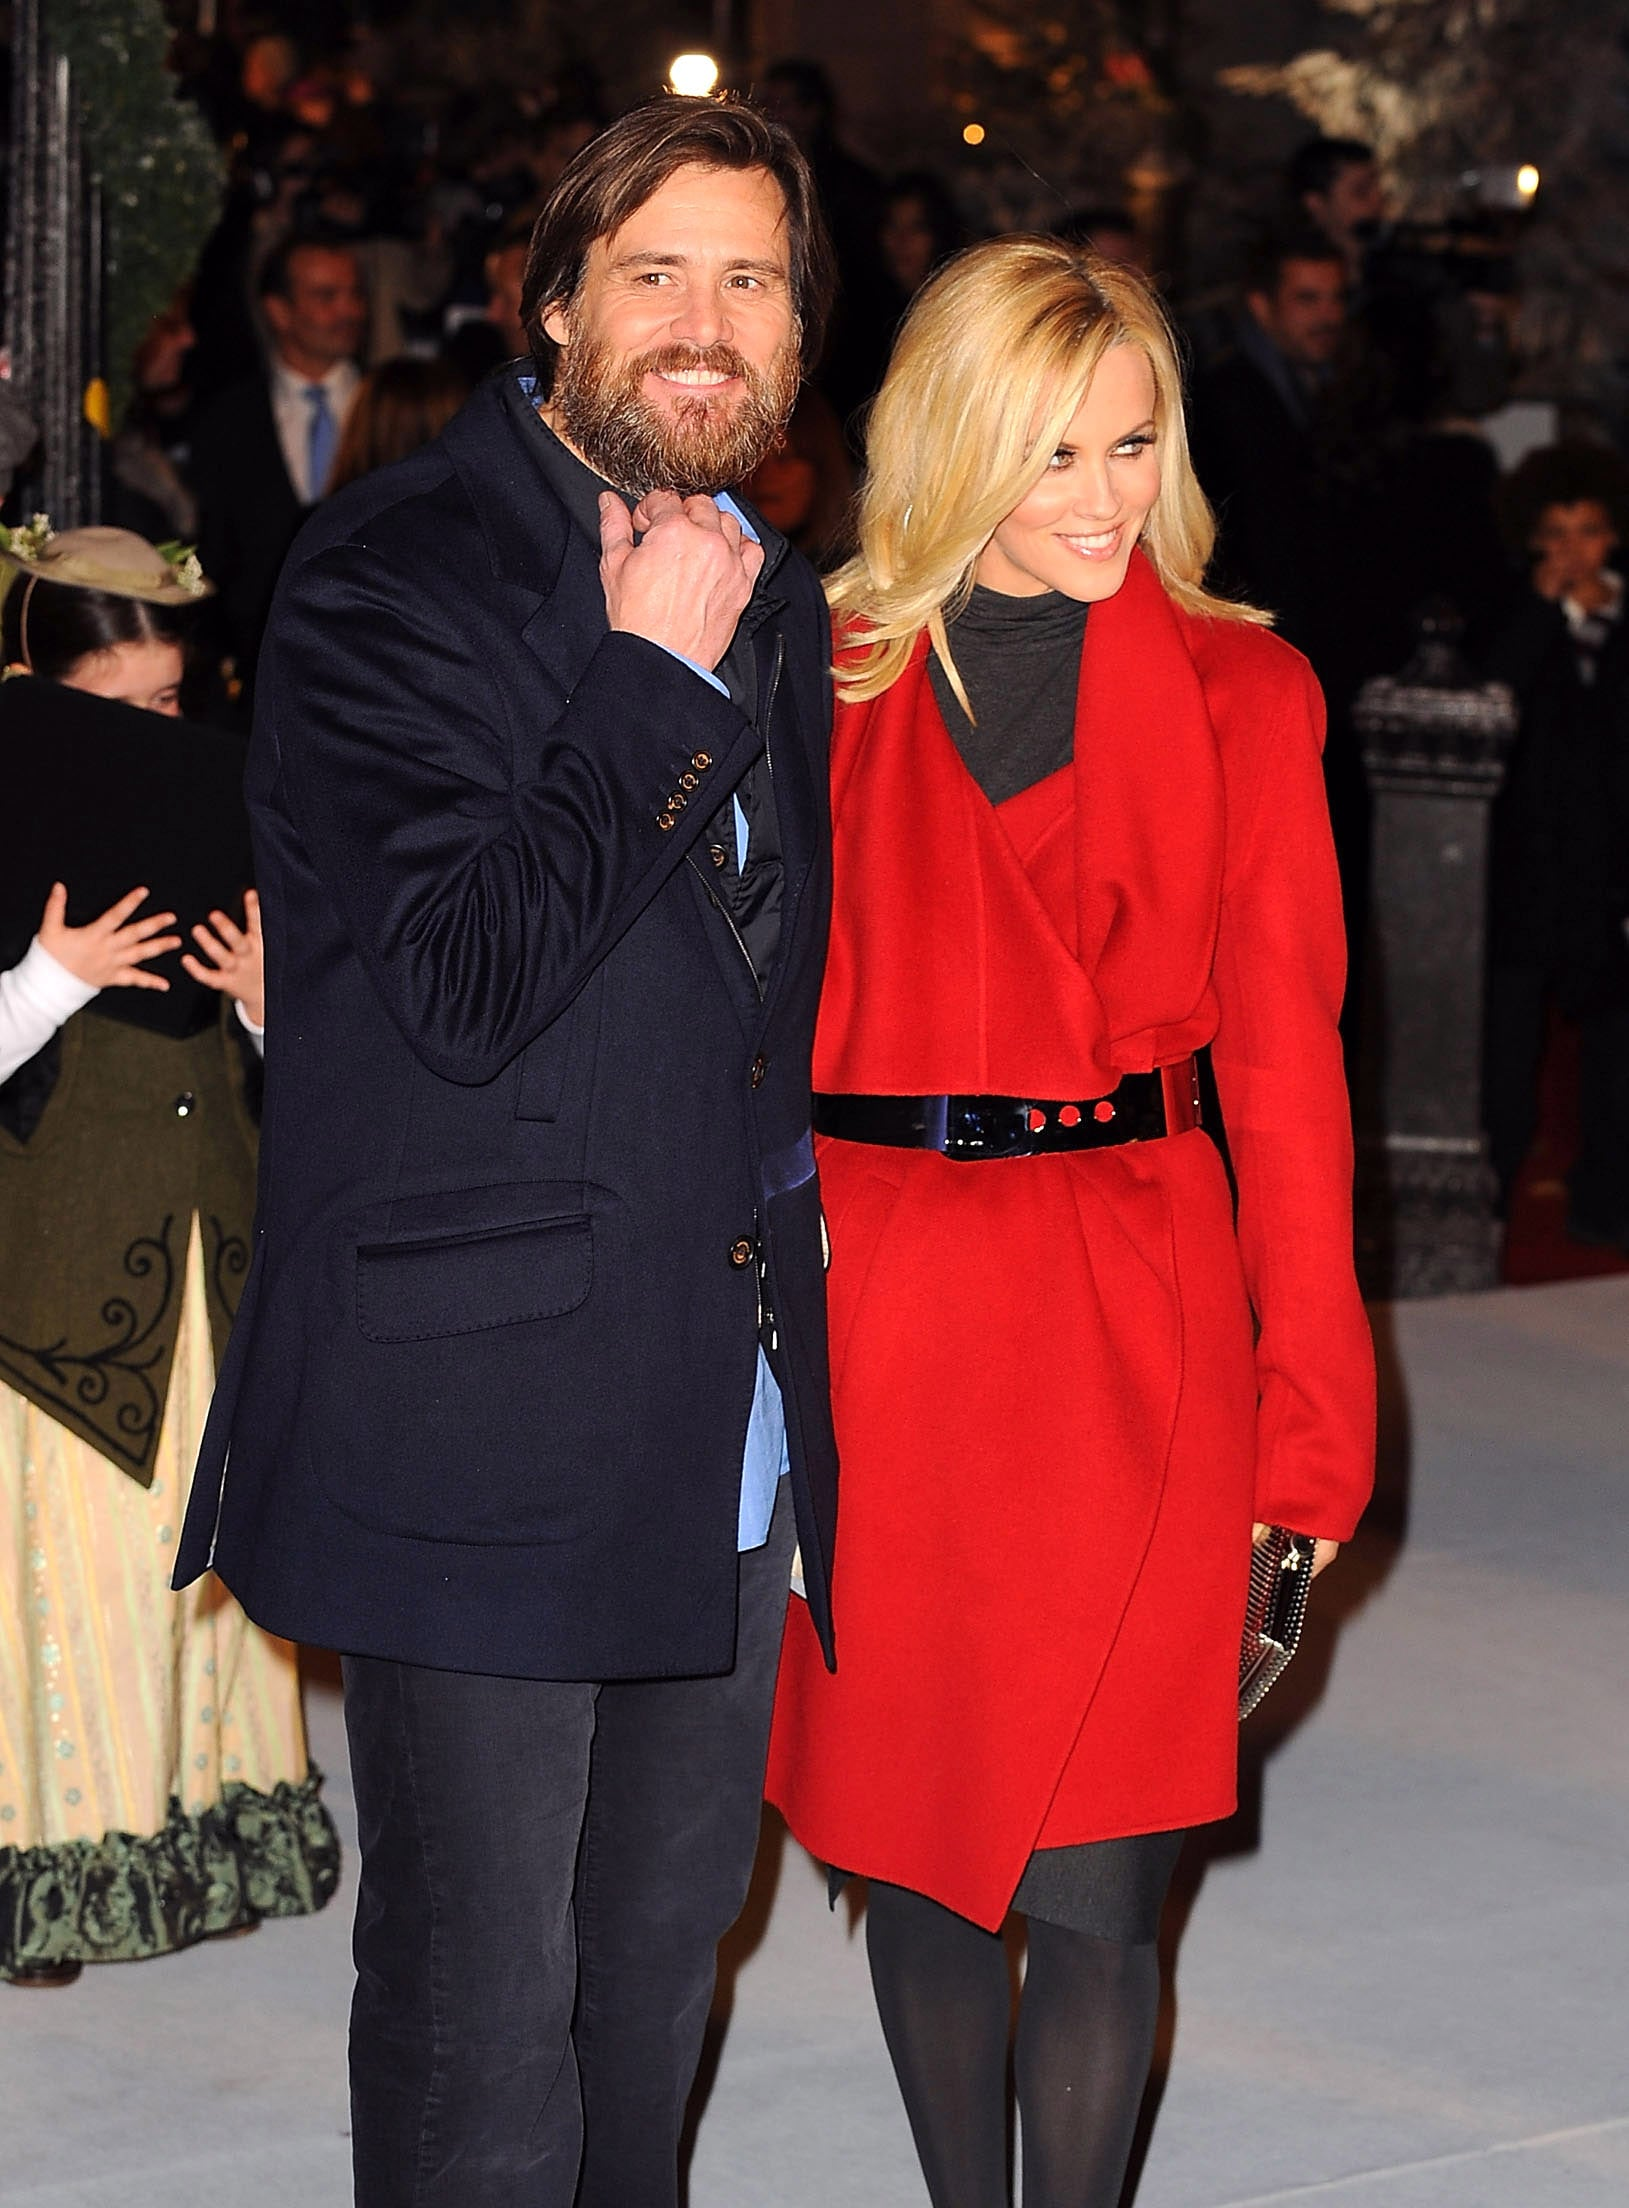 Photos Of Jim Carrey And Jenny Mccarthy At The Uk Premiere